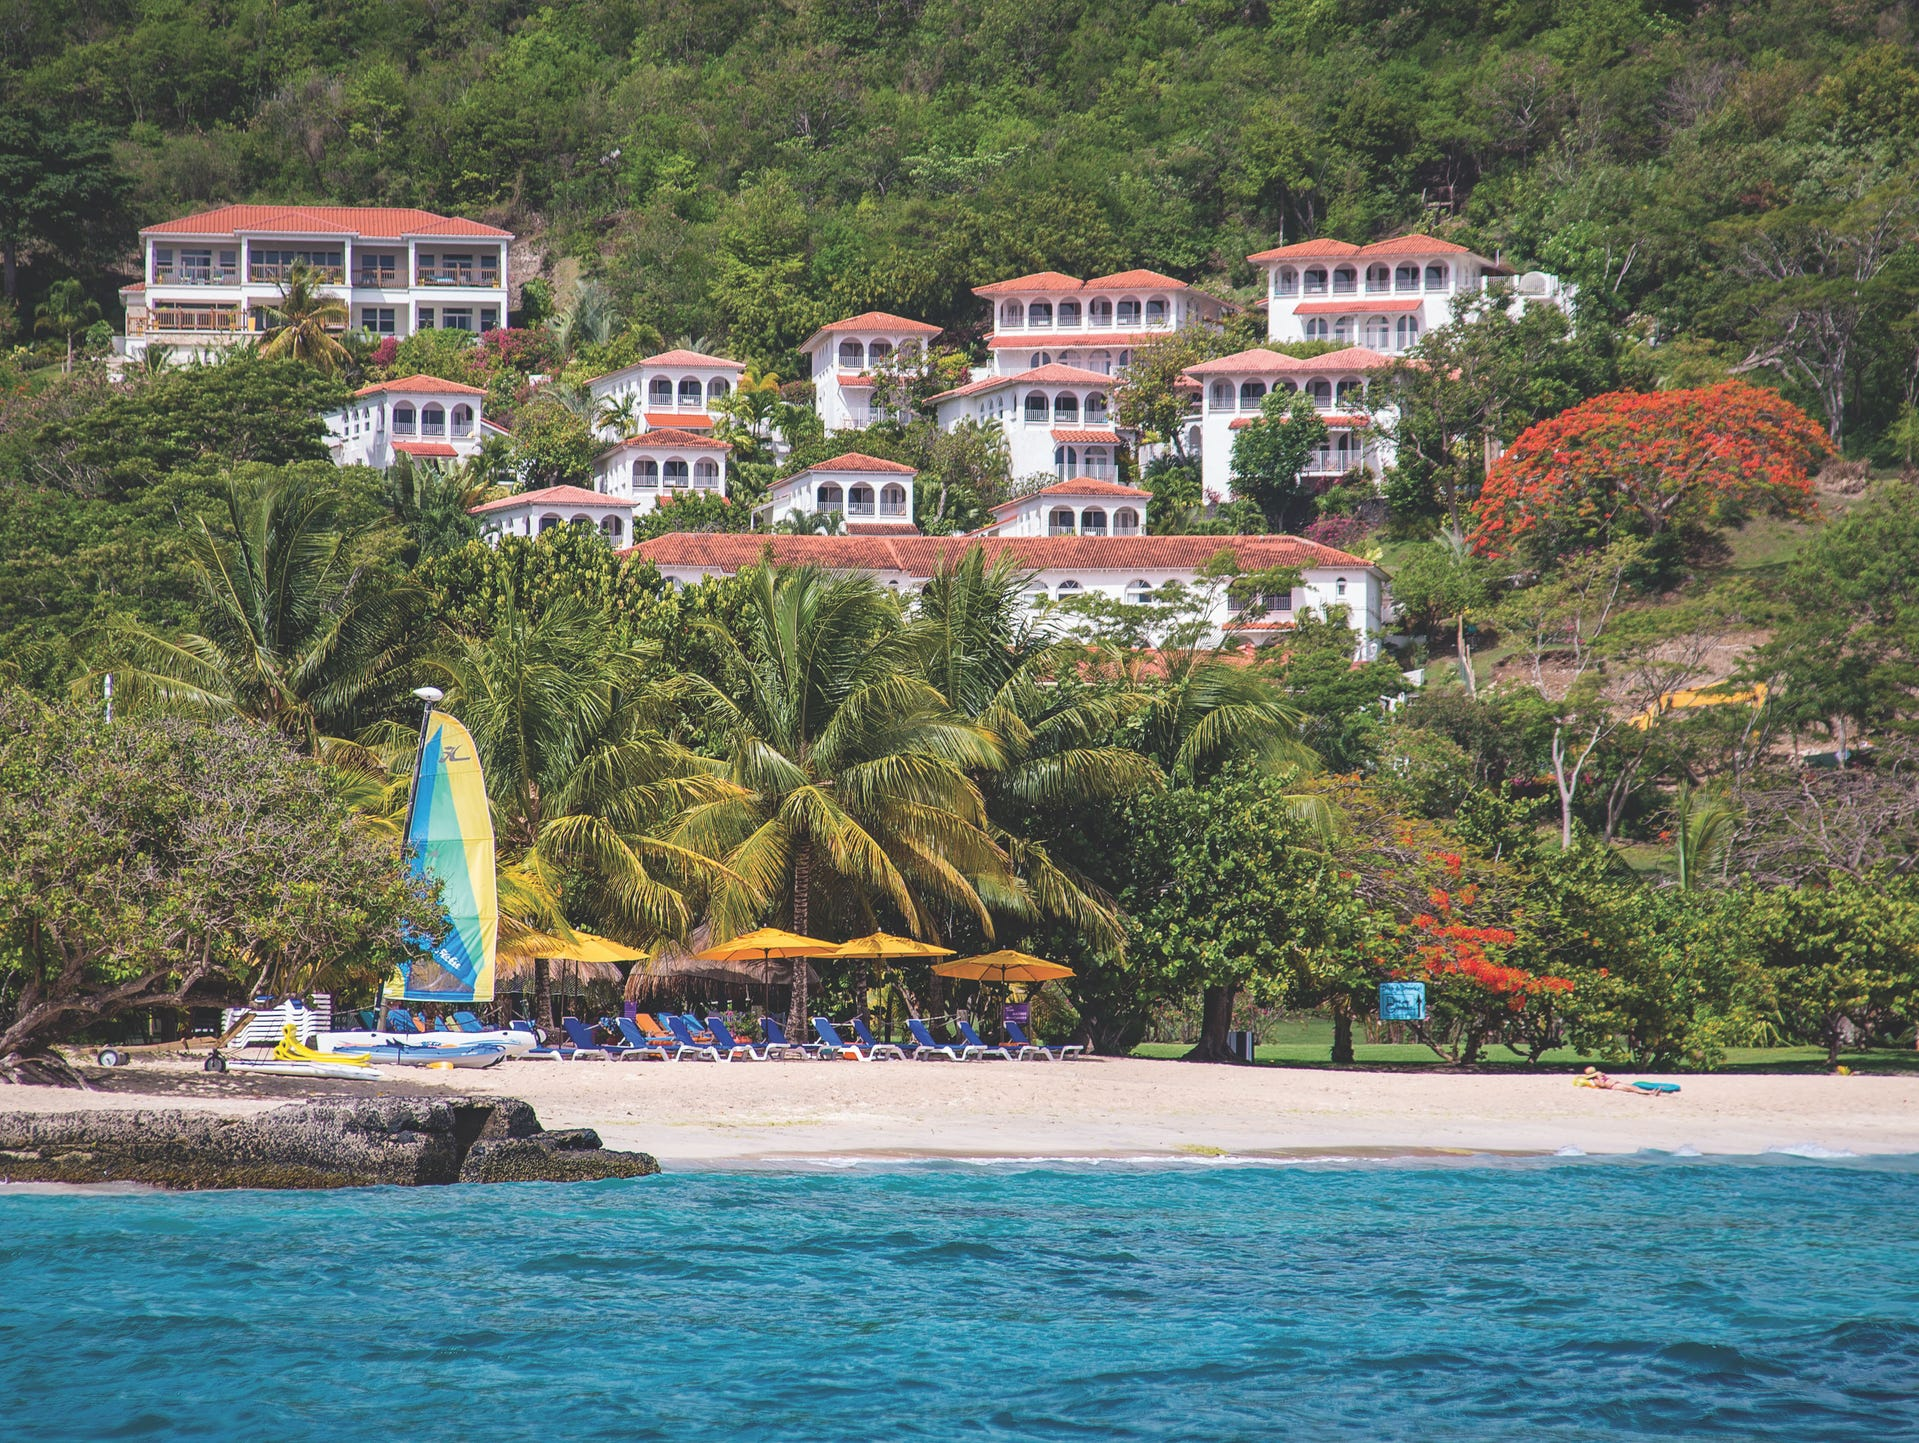 Summer S On Sale At Luxurious Caribbean Resorts